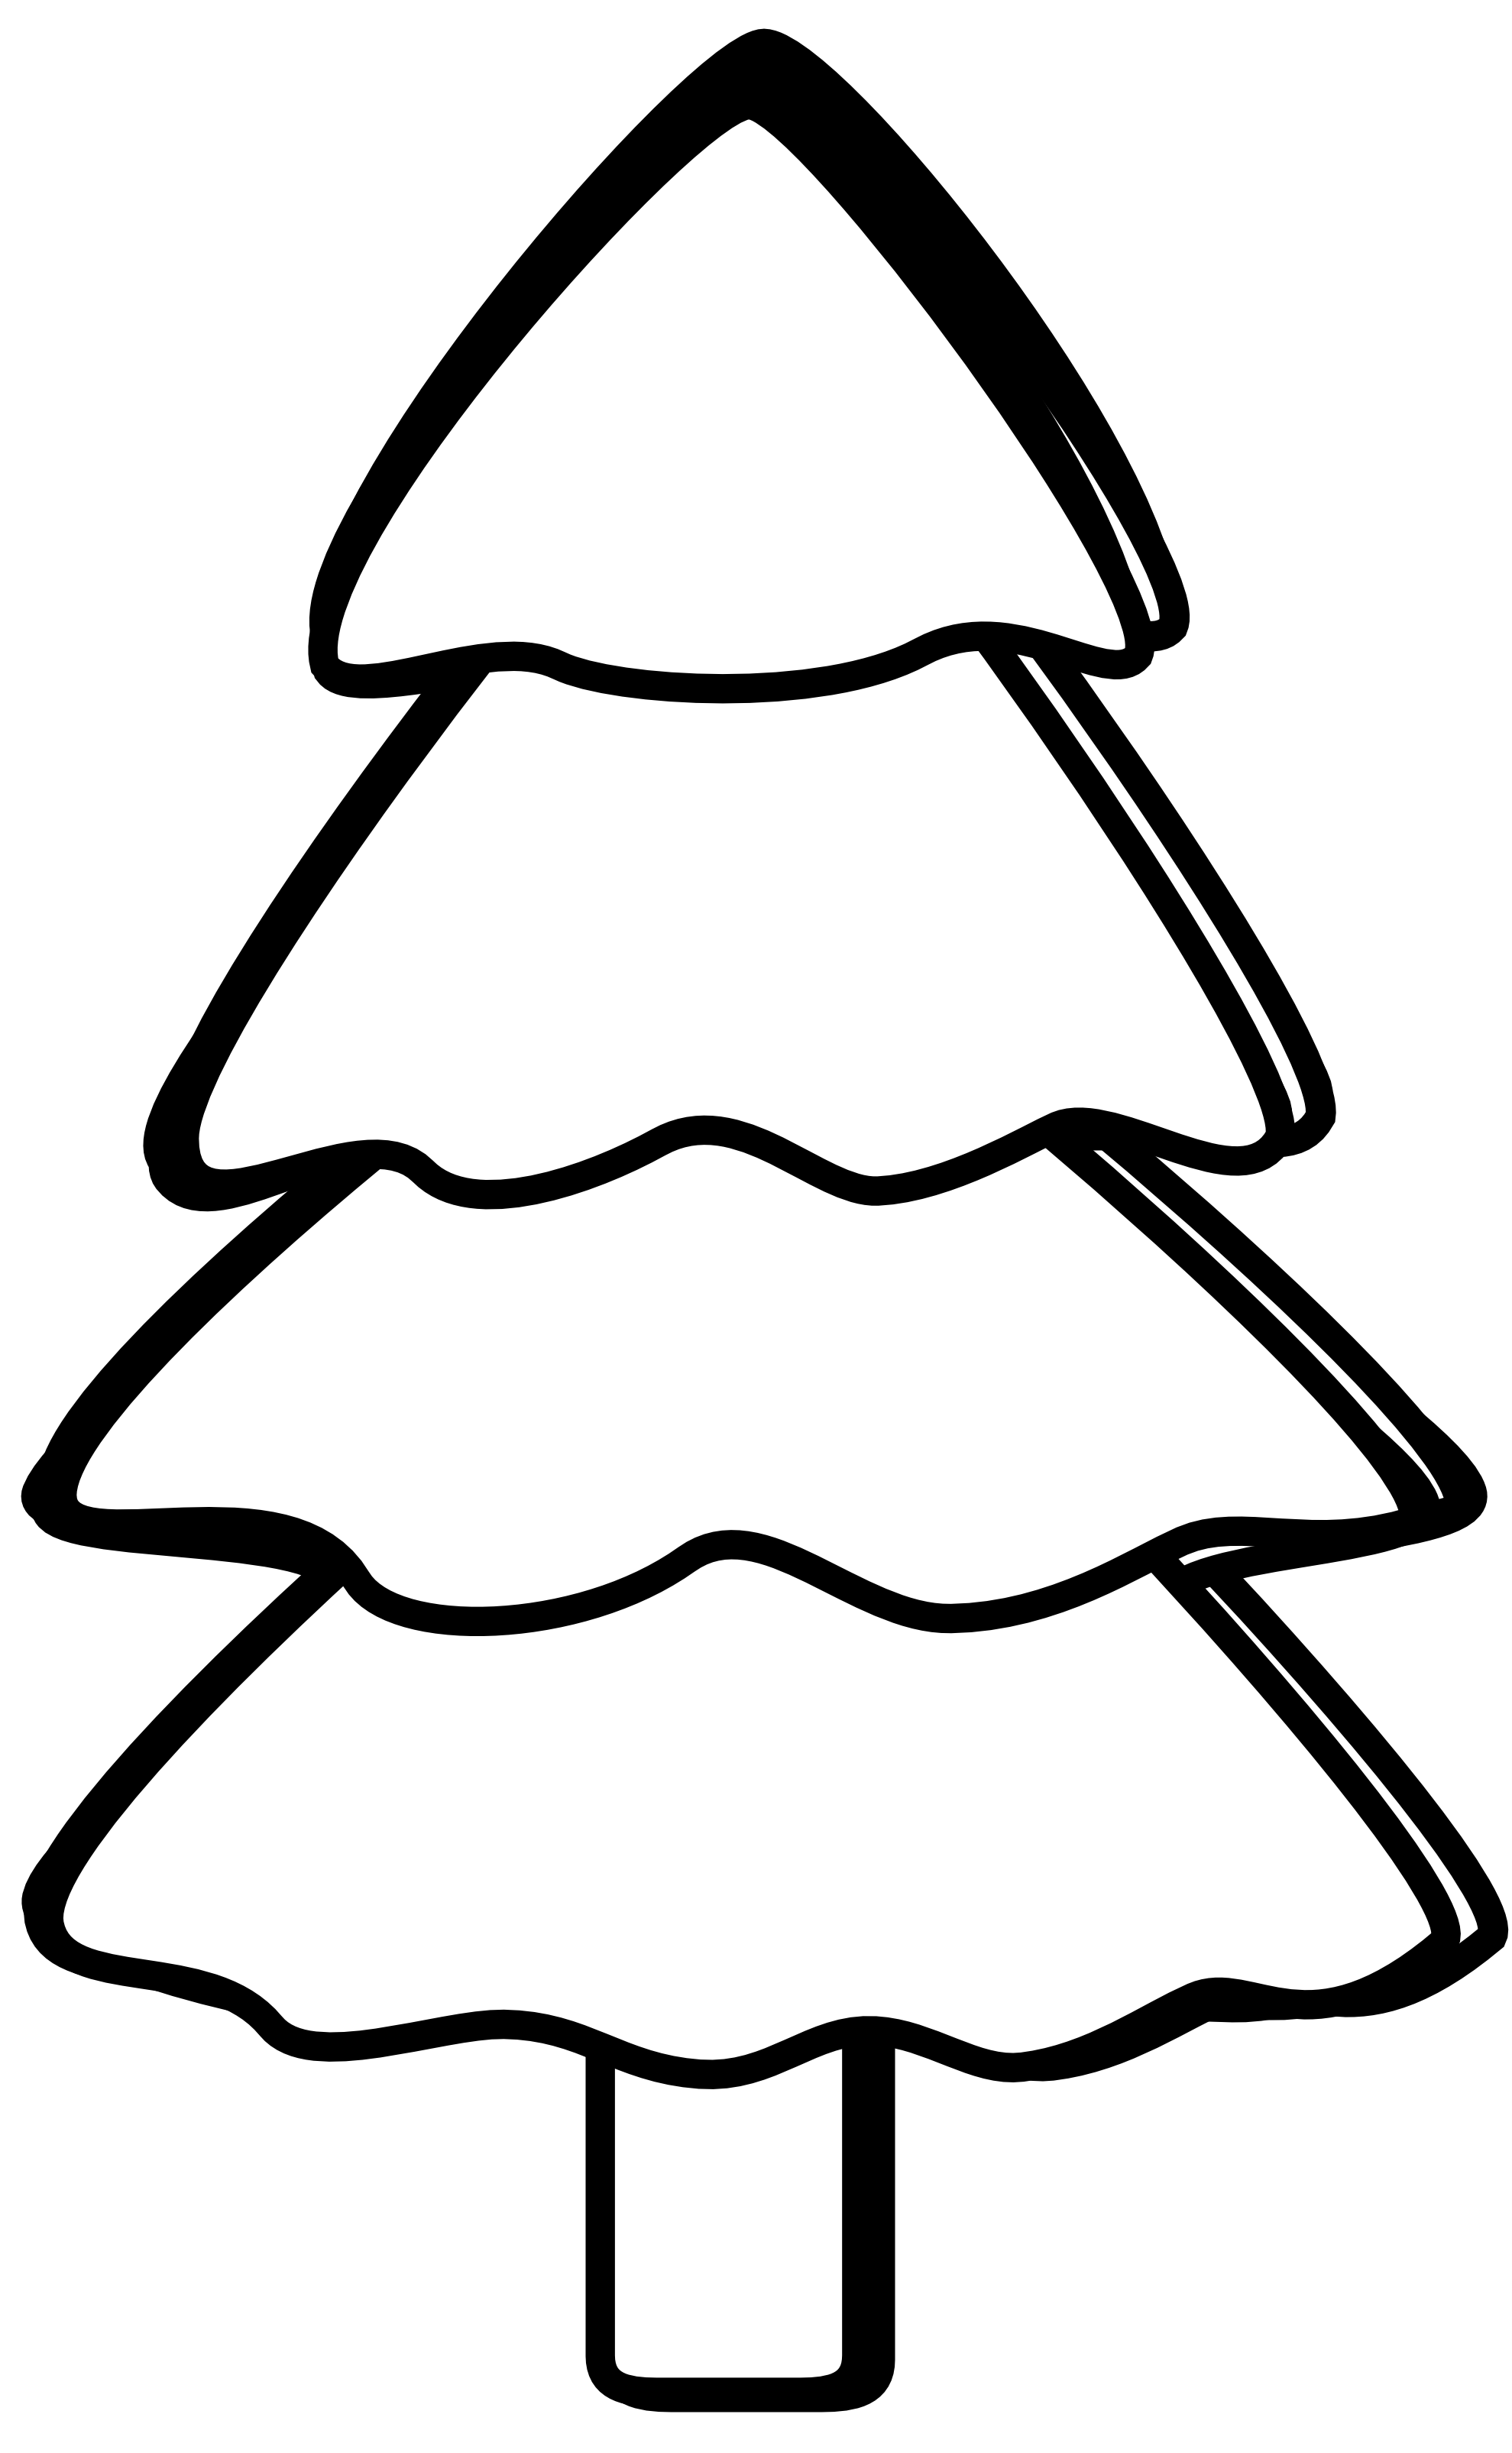 Christmas tree  black and white black and white xmas tree clipart 3